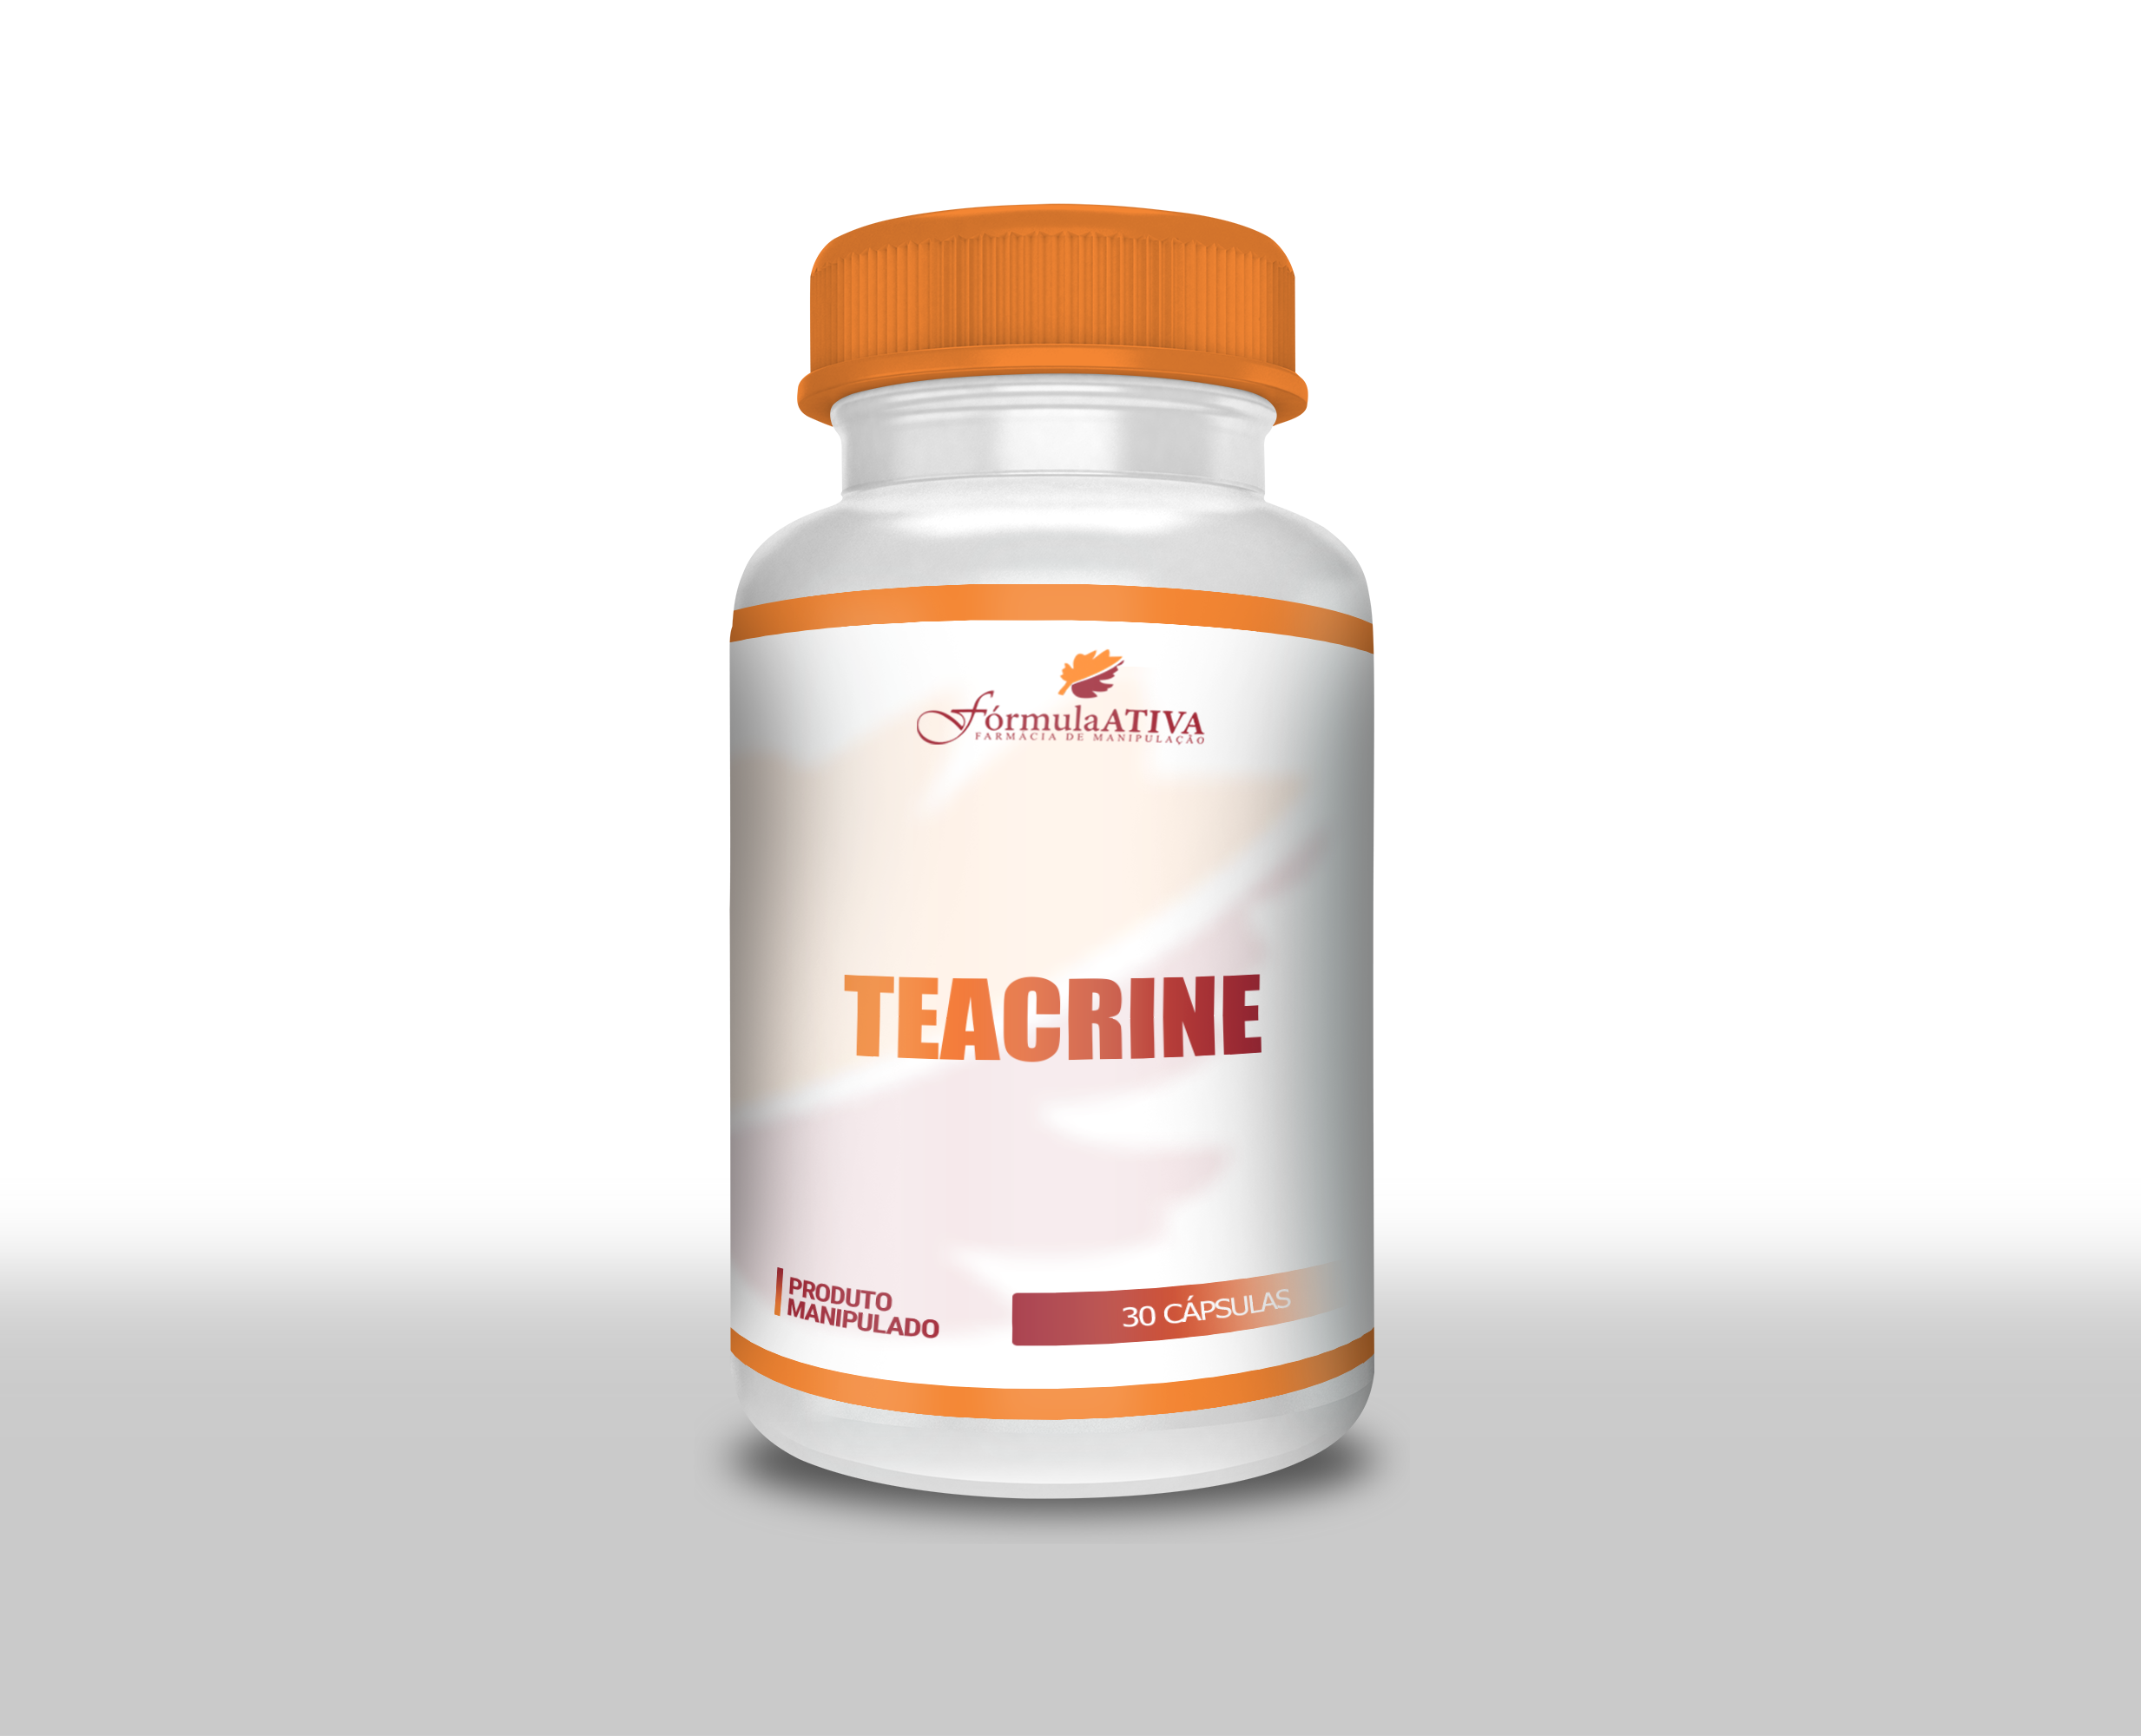 Teacrine (150mg - 30 doses)